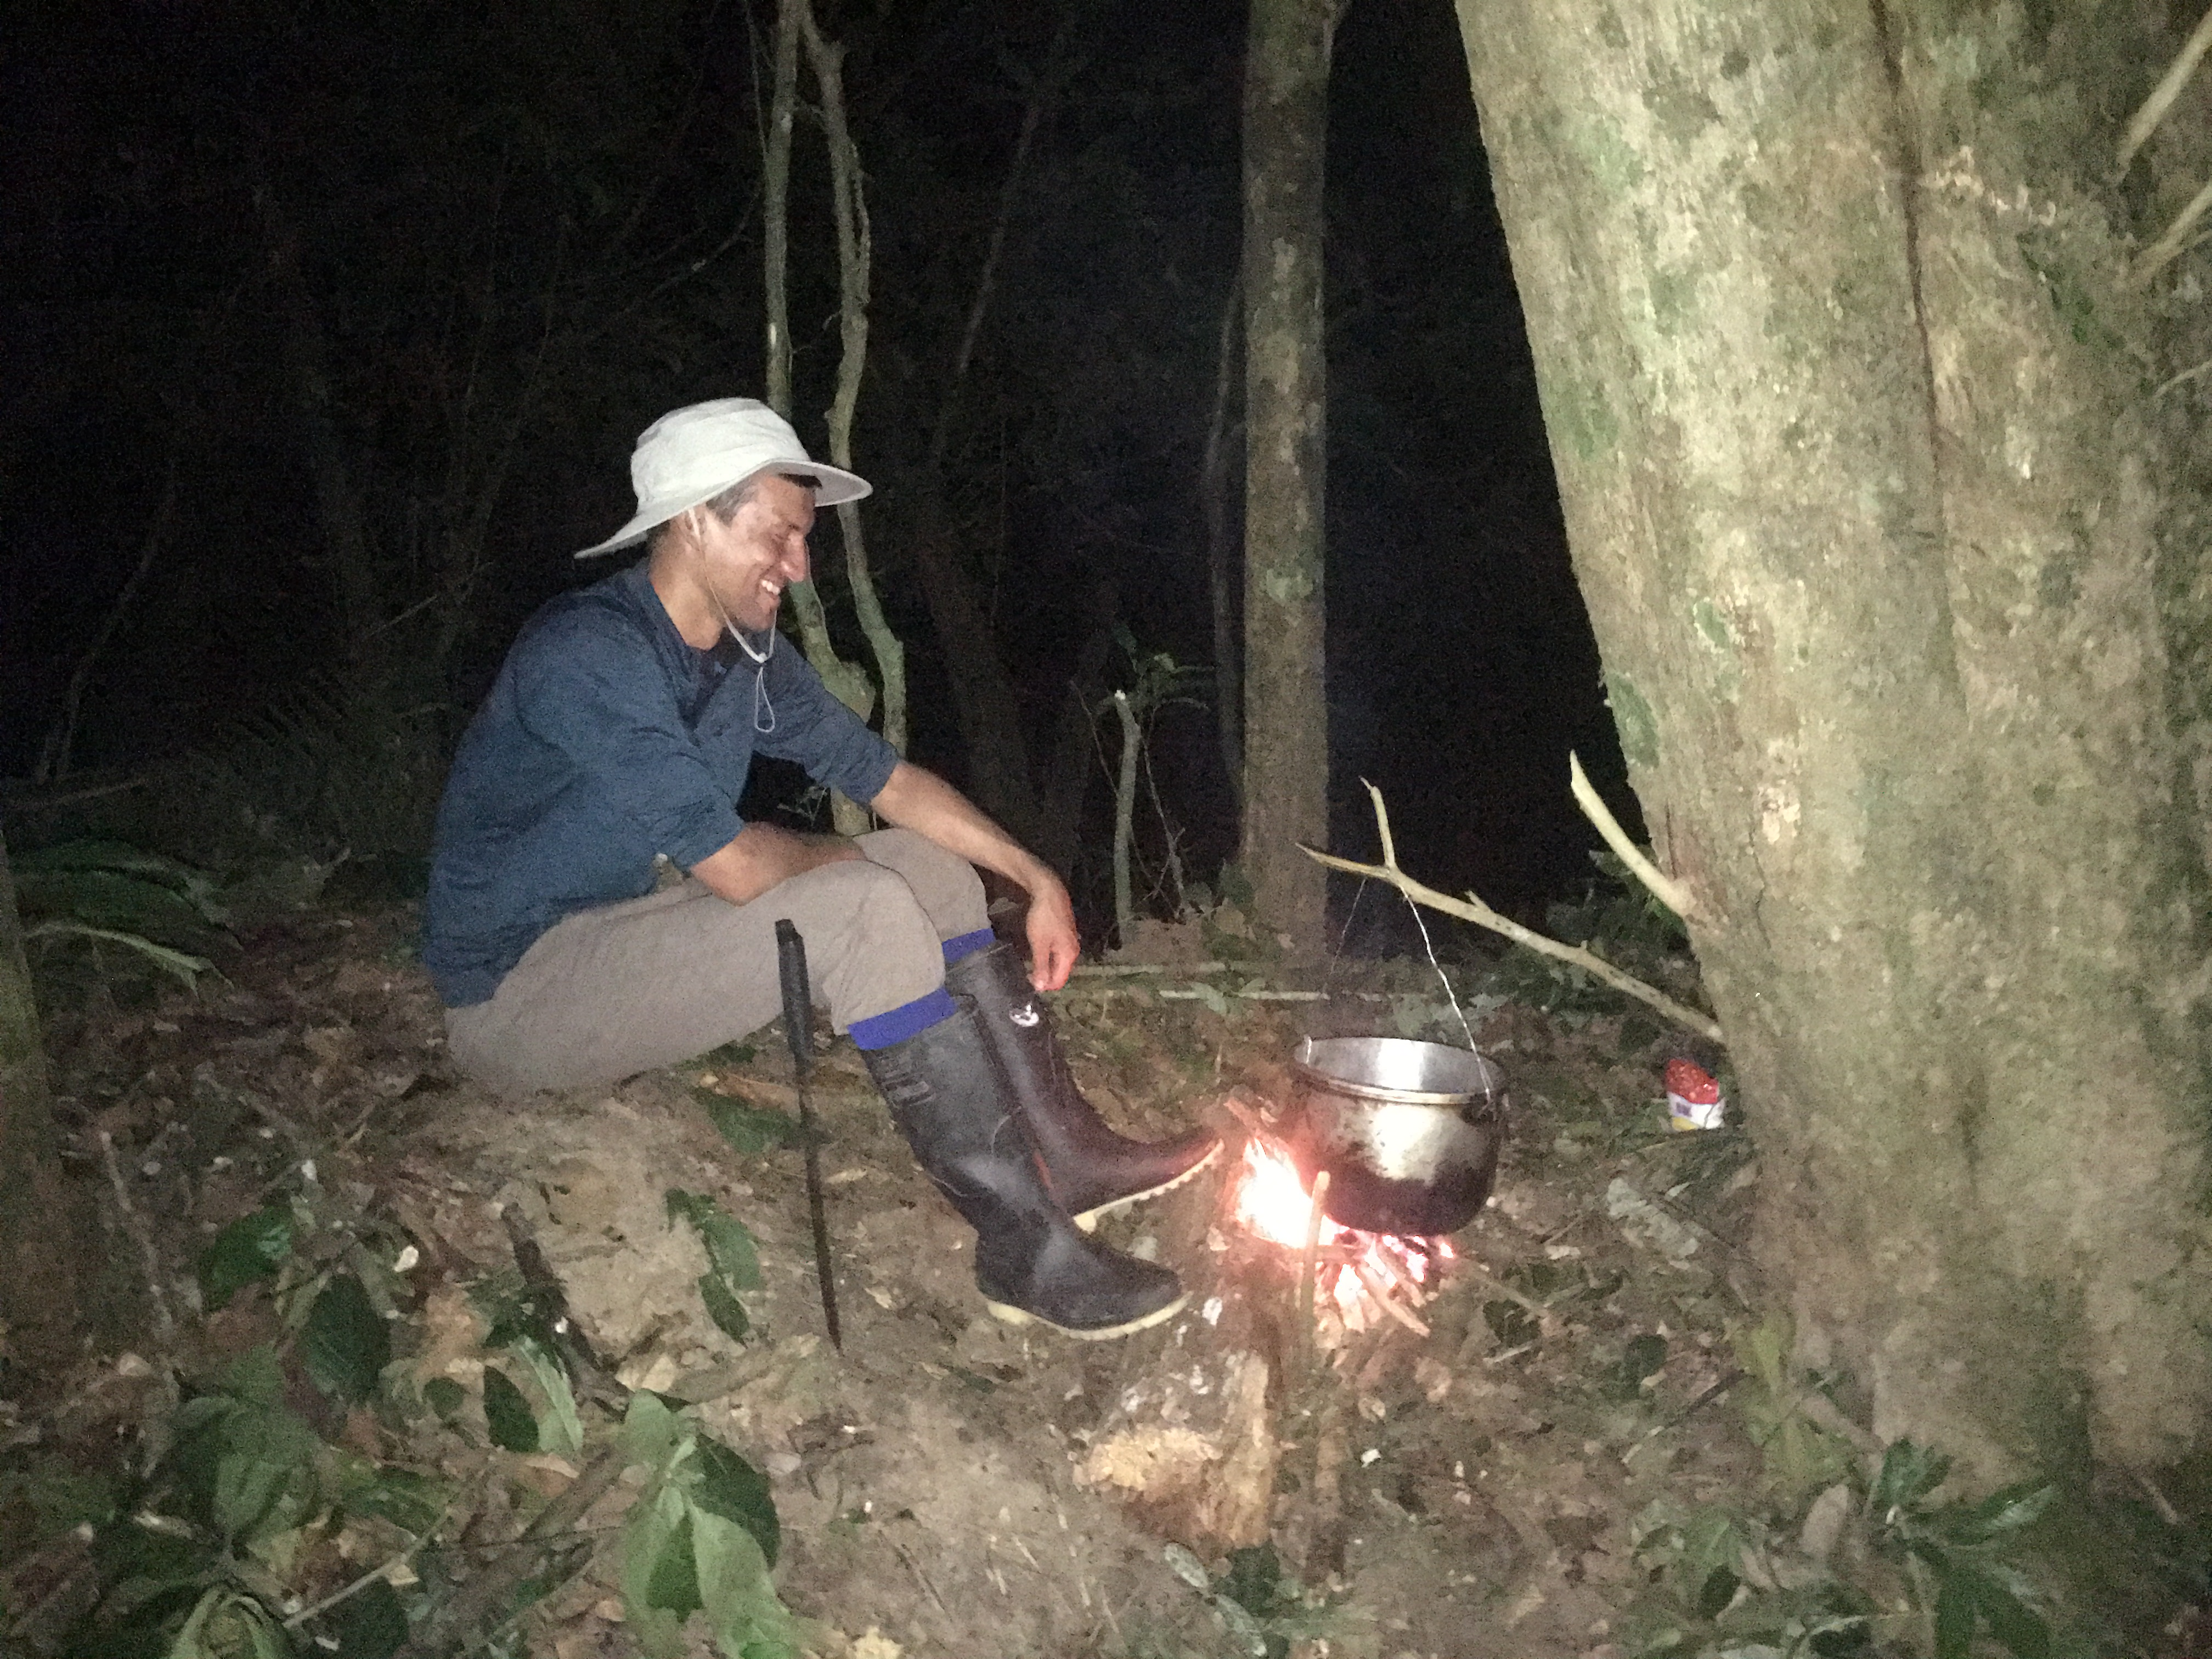 Image of AJ tending to a pot in the Amazon forest